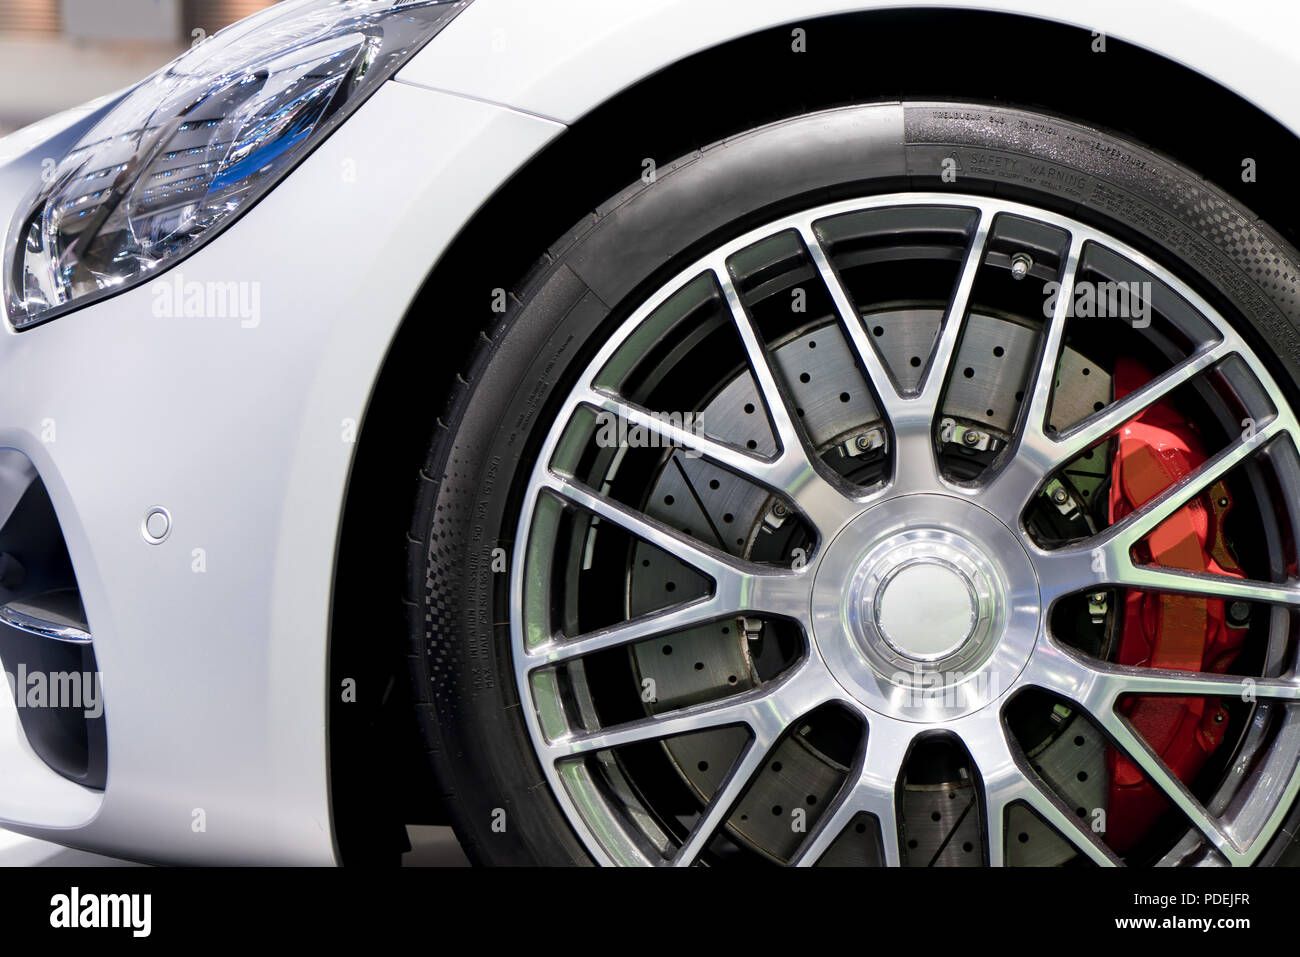 Detailing Series Clean Super Car Disc Brake Red Rims From Sports